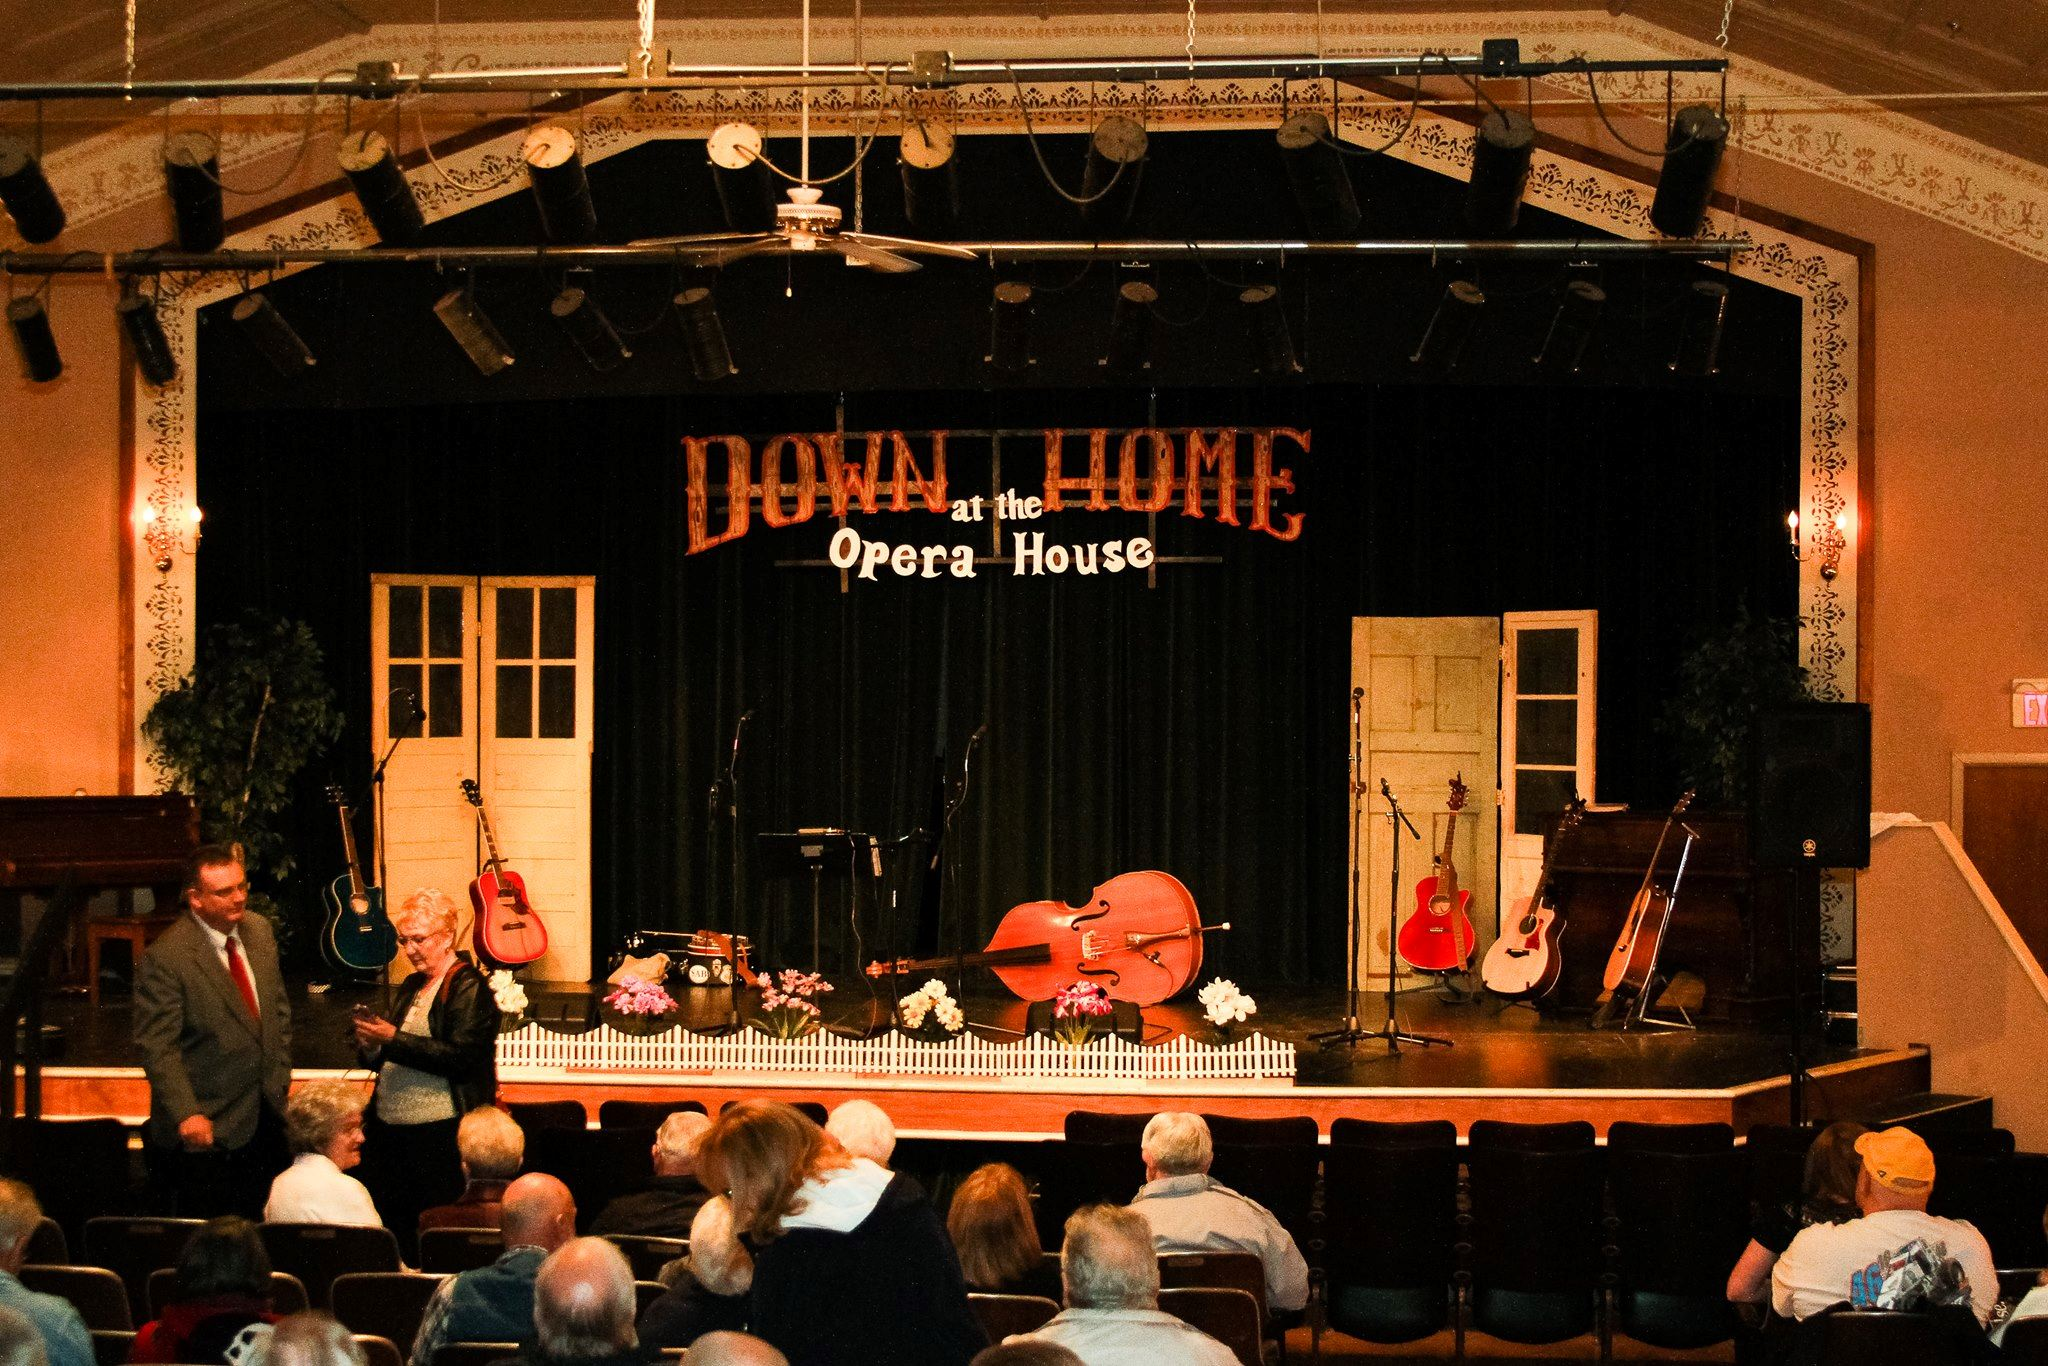 Down Home at the Opera House, October 26th at 7 PM, Fayette Opera House, 105 E Main St, Fayette, Oh